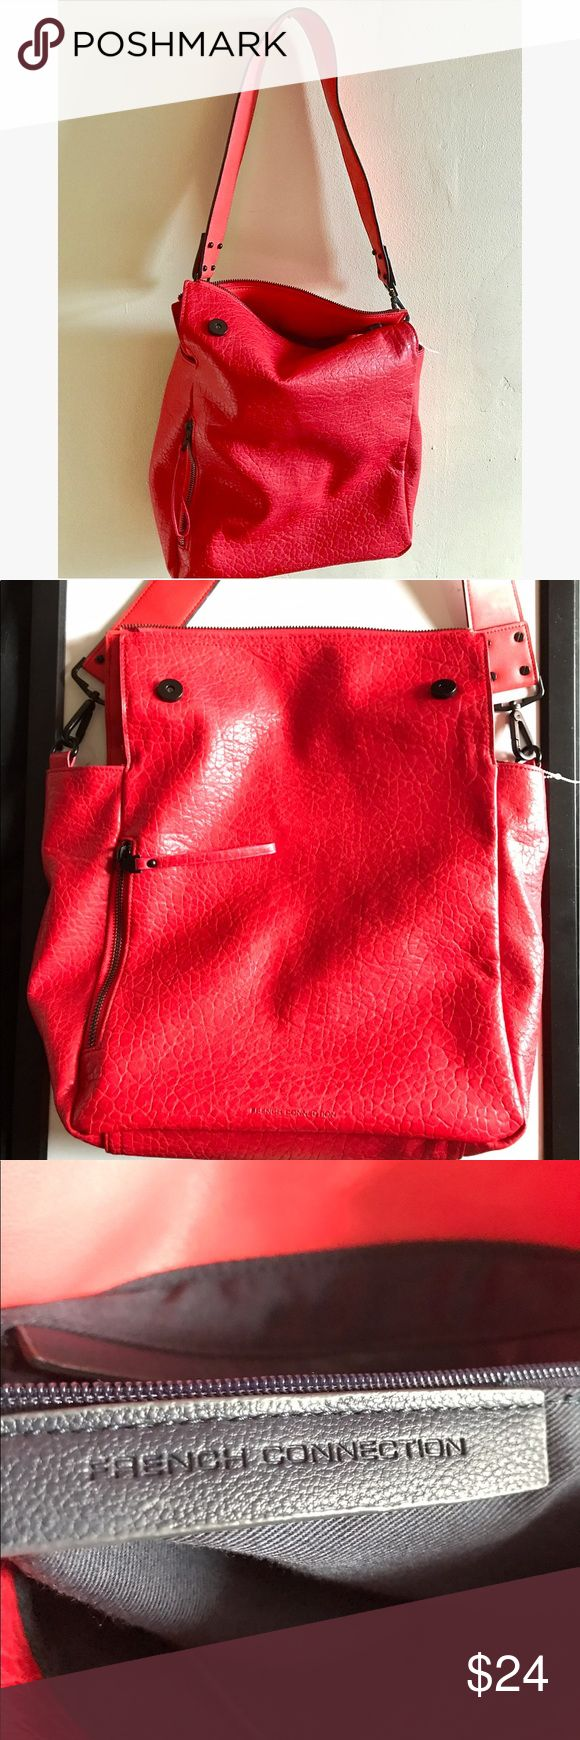 French Connection red leather purse satchel bag Great condition red leather bag. The inside is very clean, barely used. The top has some cool zipper details and snap enclosures. I'd use this purse for a laptop or just a regular trendy bag. French Connection Bags Satchels